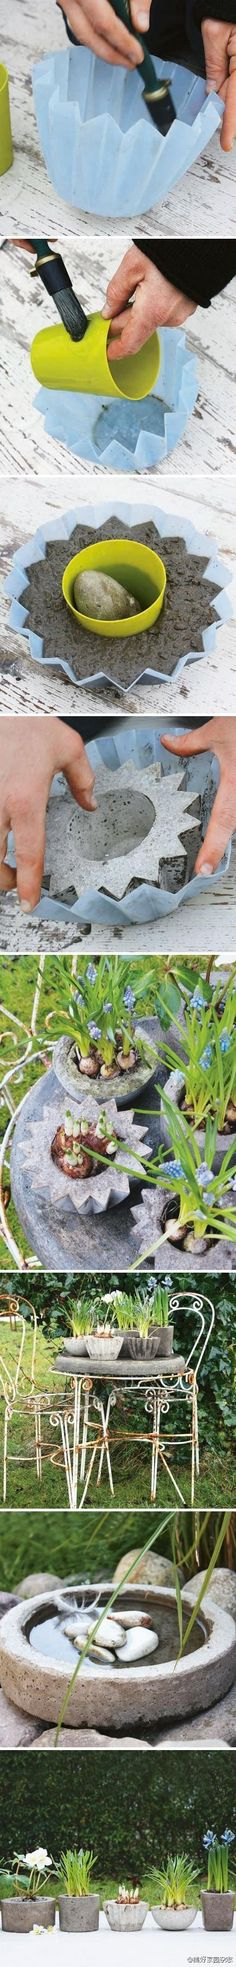 make your own planters #diy #cement by AnjaVE